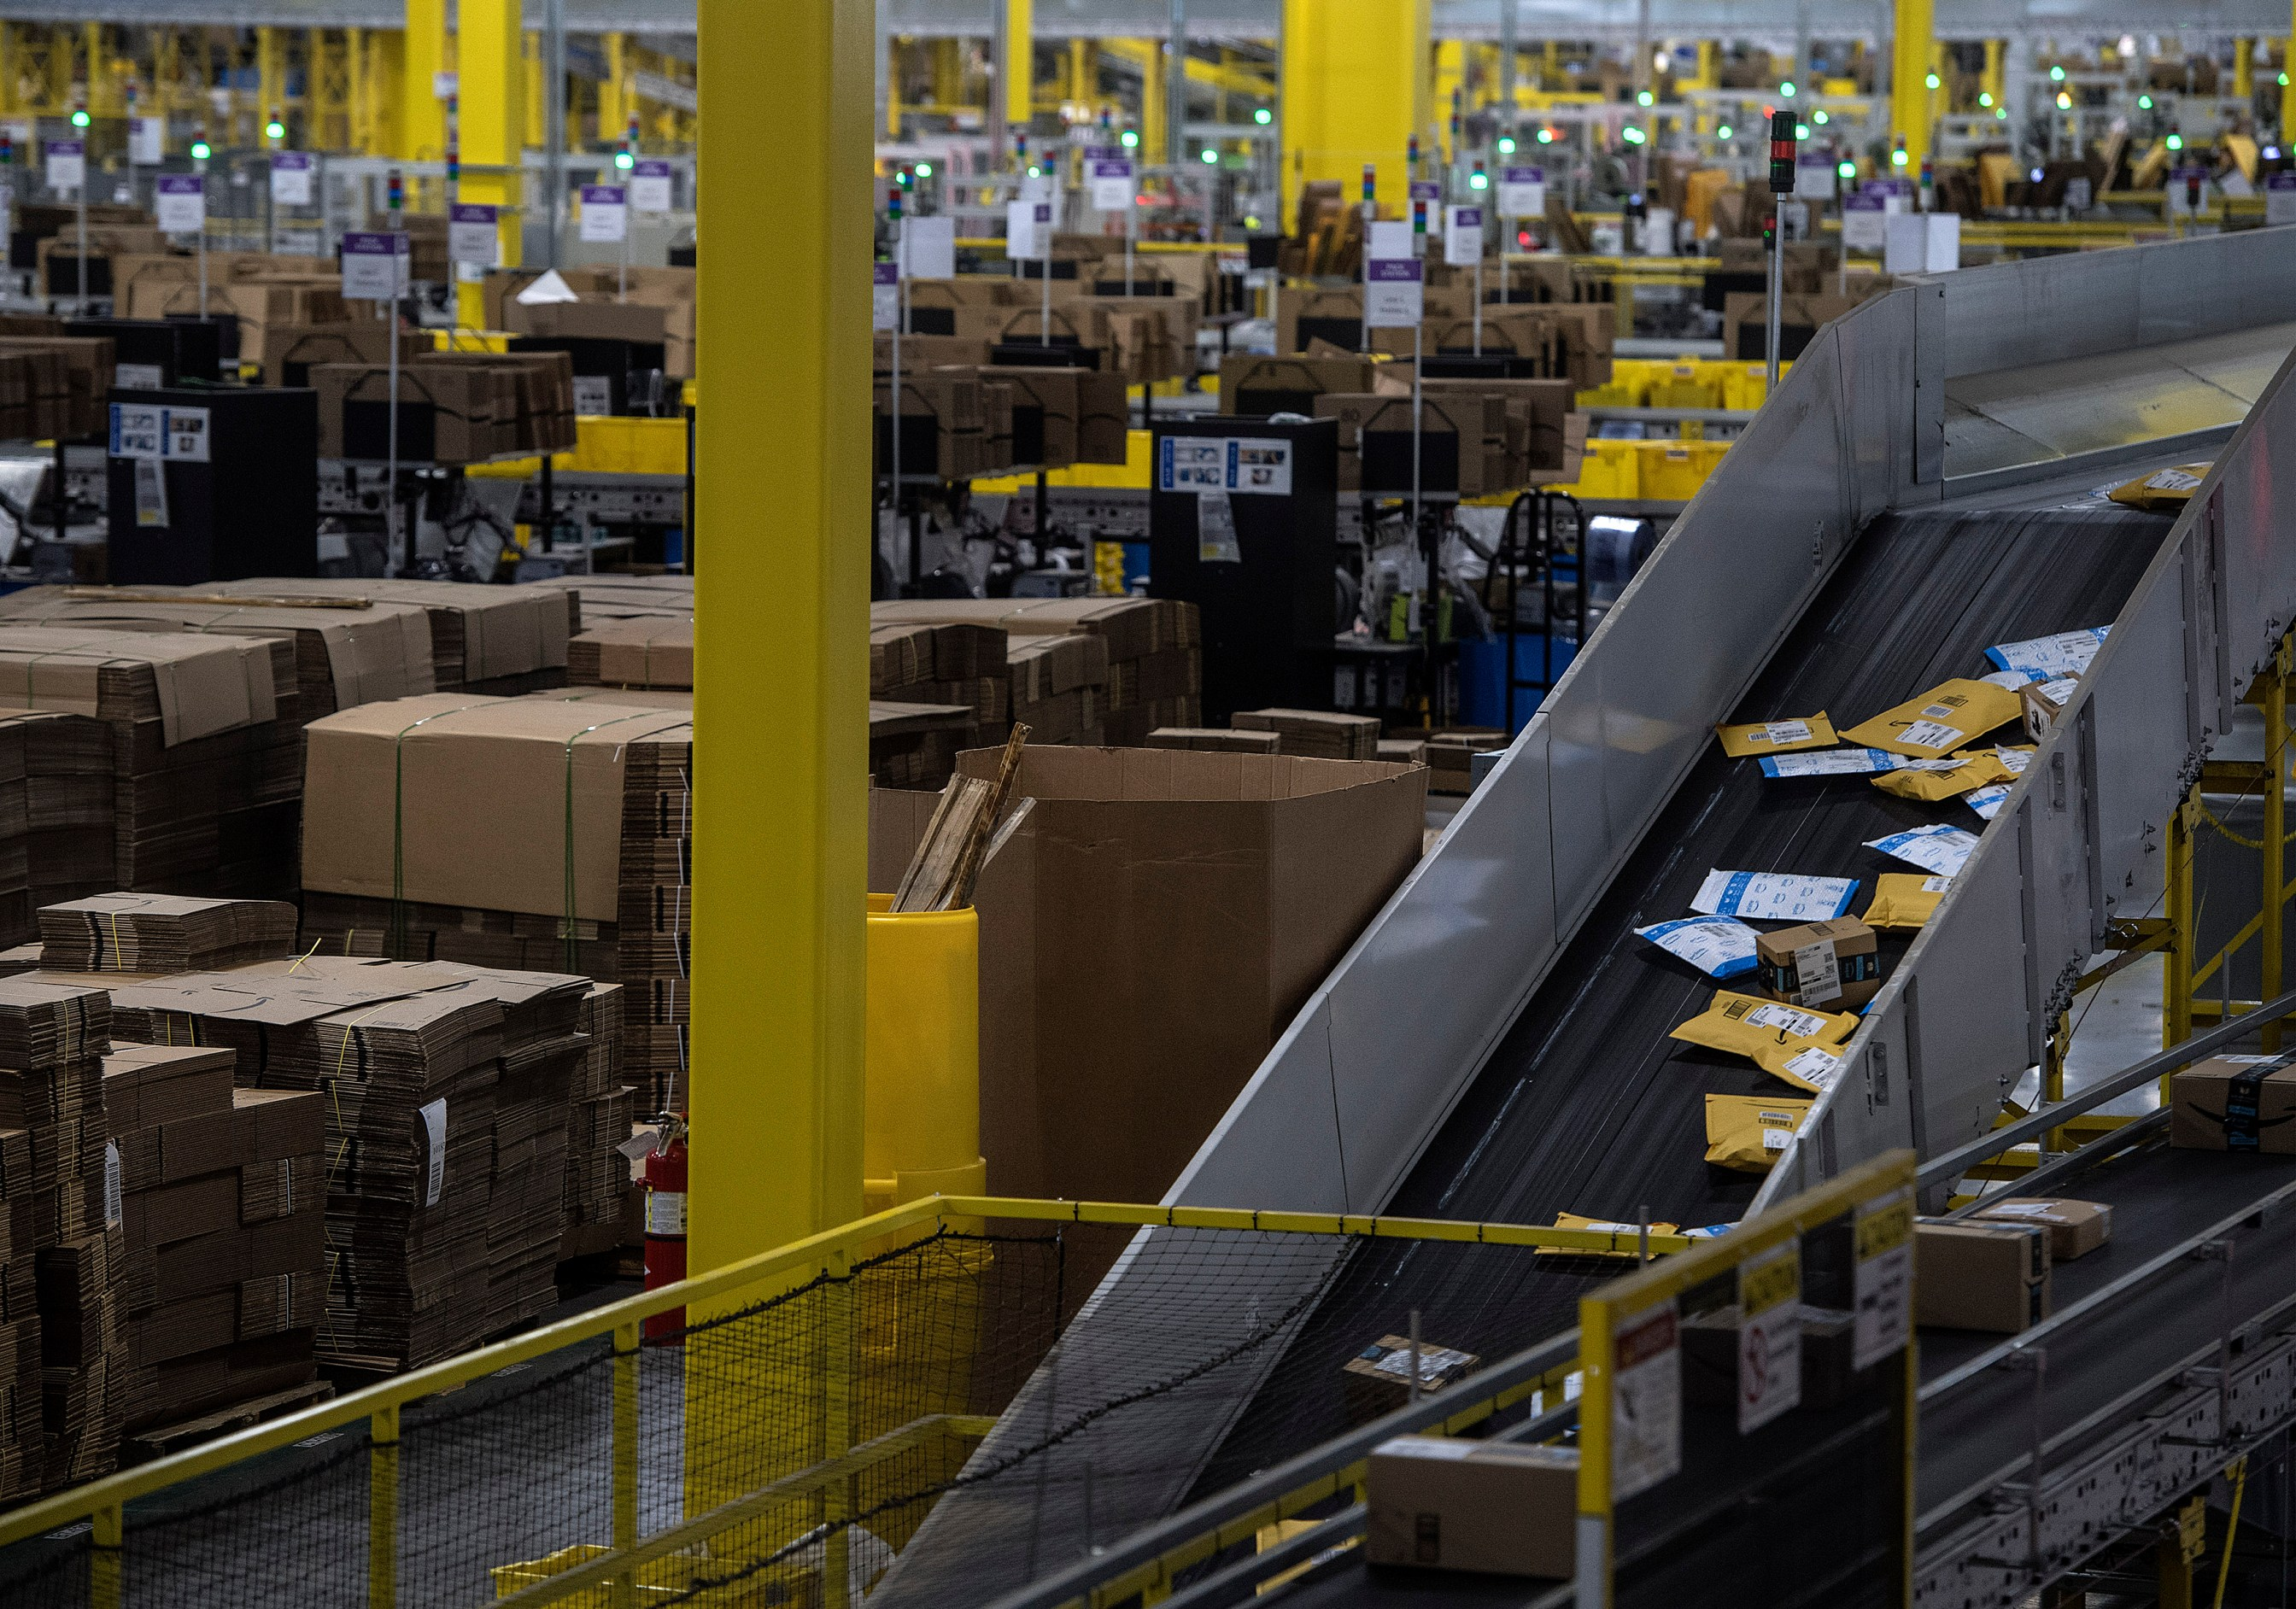 Amazon Opens Warehouse To Show How Humans, Robots Are Both